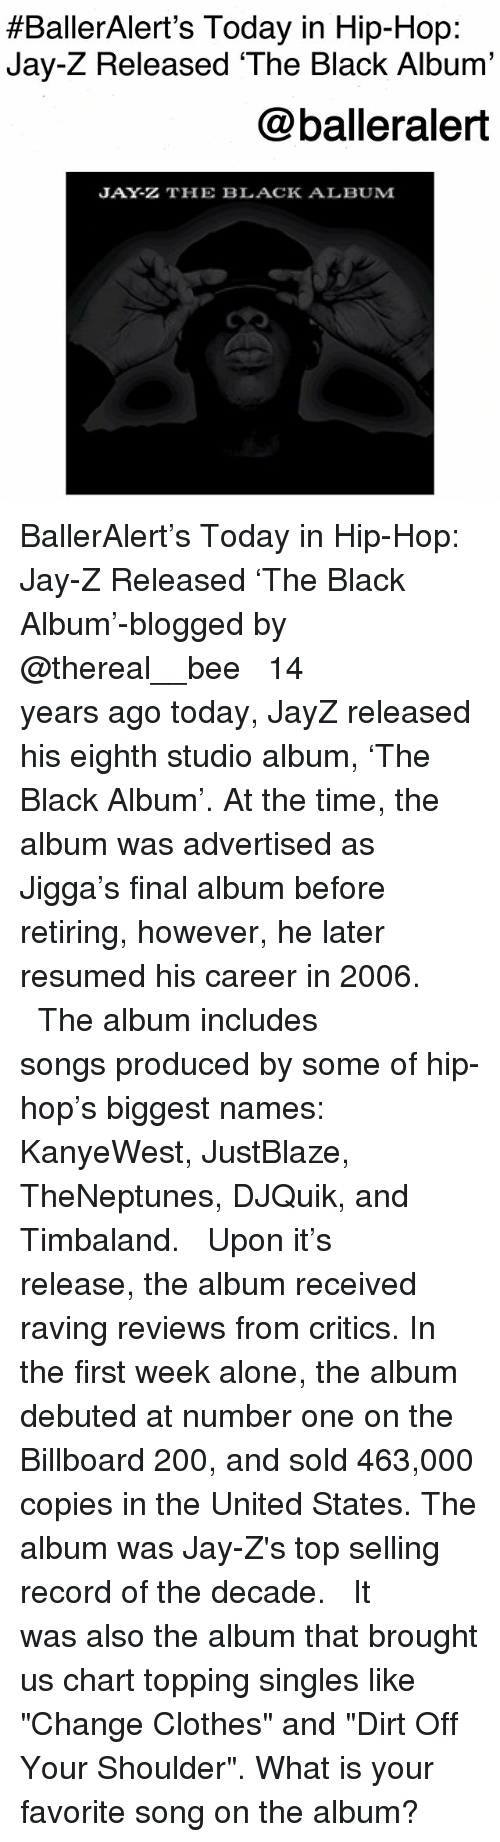 "Being Alone, Bailey Jay, and Billboard:  #BallerAlert's Today in Hip-Hop:  Jay-Z Released 'The Black Album'  @balleralert  JAY-Z THE BLACK ALBUM BallerAlert's Today in Hip-Hop: Jay-Z Released 'The Black Album'-blogged by @thereal__bee ⠀⠀⠀⠀⠀⠀⠀⠀⠀ ⠀⠀ 14 years ago today, JayZ released his eighth studio album, 'The Black Album'. At the time, the album was advertised as Jigga's final album before retiring, however, he later resumed his career in 2006. ⠀⠀⠀⠀⠀⠀⠀⠀⠀ ⠀⠀ The album includes songs produced by some of hip-hop's biggest names: KanyeWest, JustBlaze, TheNeptunes, DJQuik, and Timbaland. ⠀⠀⠀⠀⠀⠀⠀⠀⠀ ⠀⠀ Upon it's release, the album received raving reviews from critics. In the first week alone, the album debuted at number one on the Billboard 200, and sold 463,000 copies in the United States. The album was Jay-Z's top selling record of the decade. ⠀⠀⠀⠀⠀⠀⠀⠀⠀ ⠀⠀ It was also the album that brought us chart topping singles like ""Change Clothes"" and ""Dirt Off Your Shoulder"". What is your favorite song on the album?"